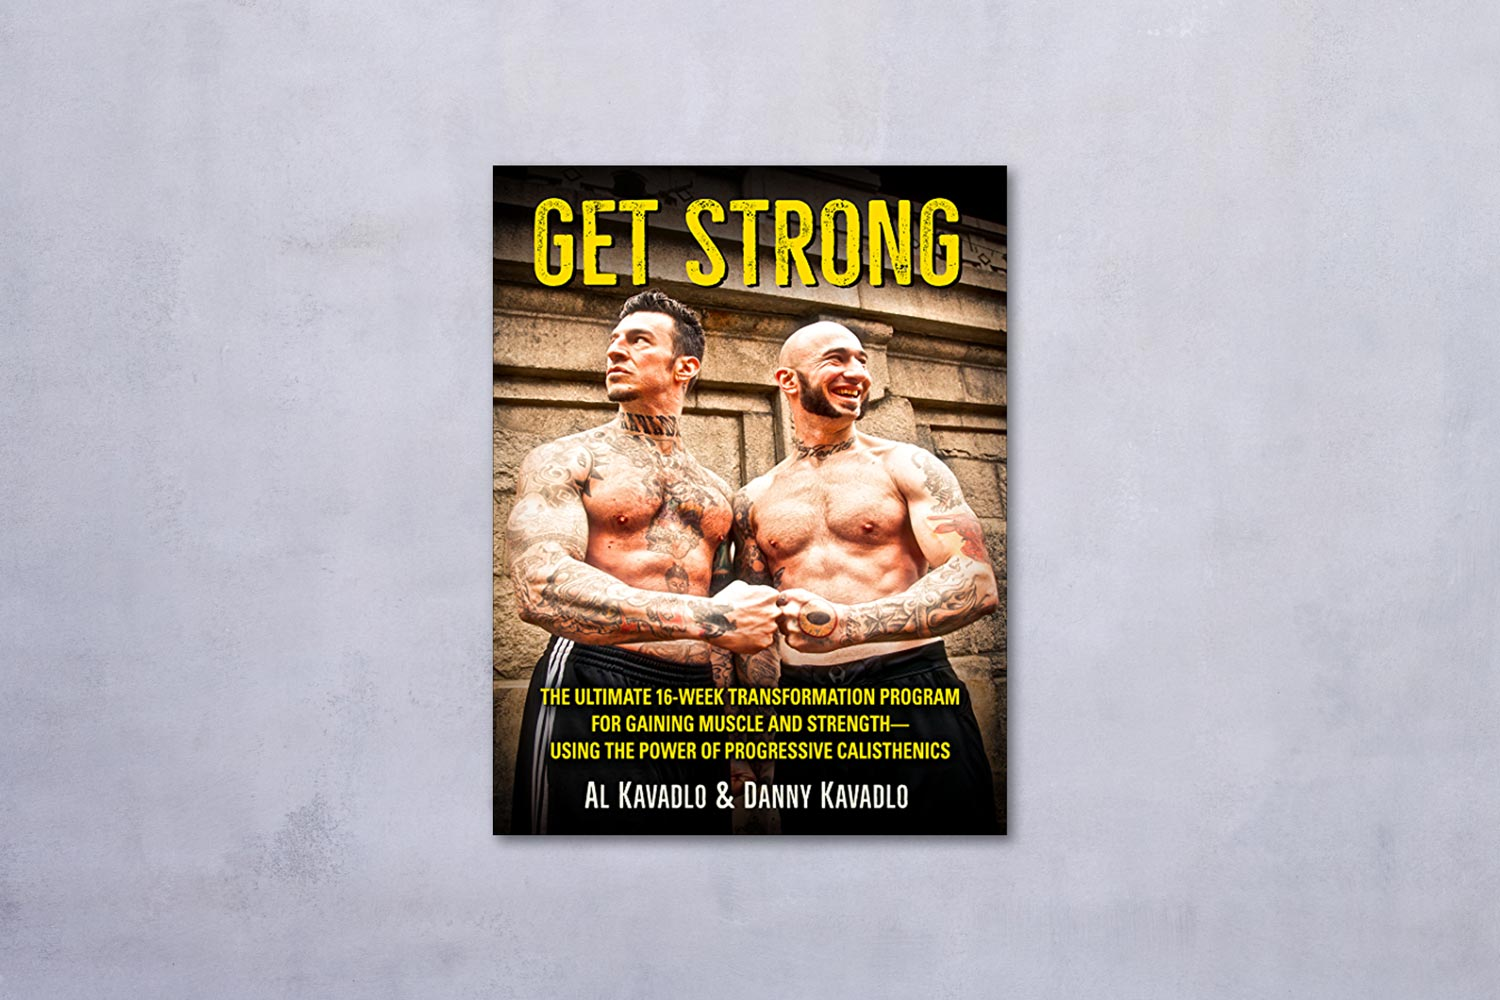 Get Strong by Al Kavadlo & Danny Kavadlo book cover